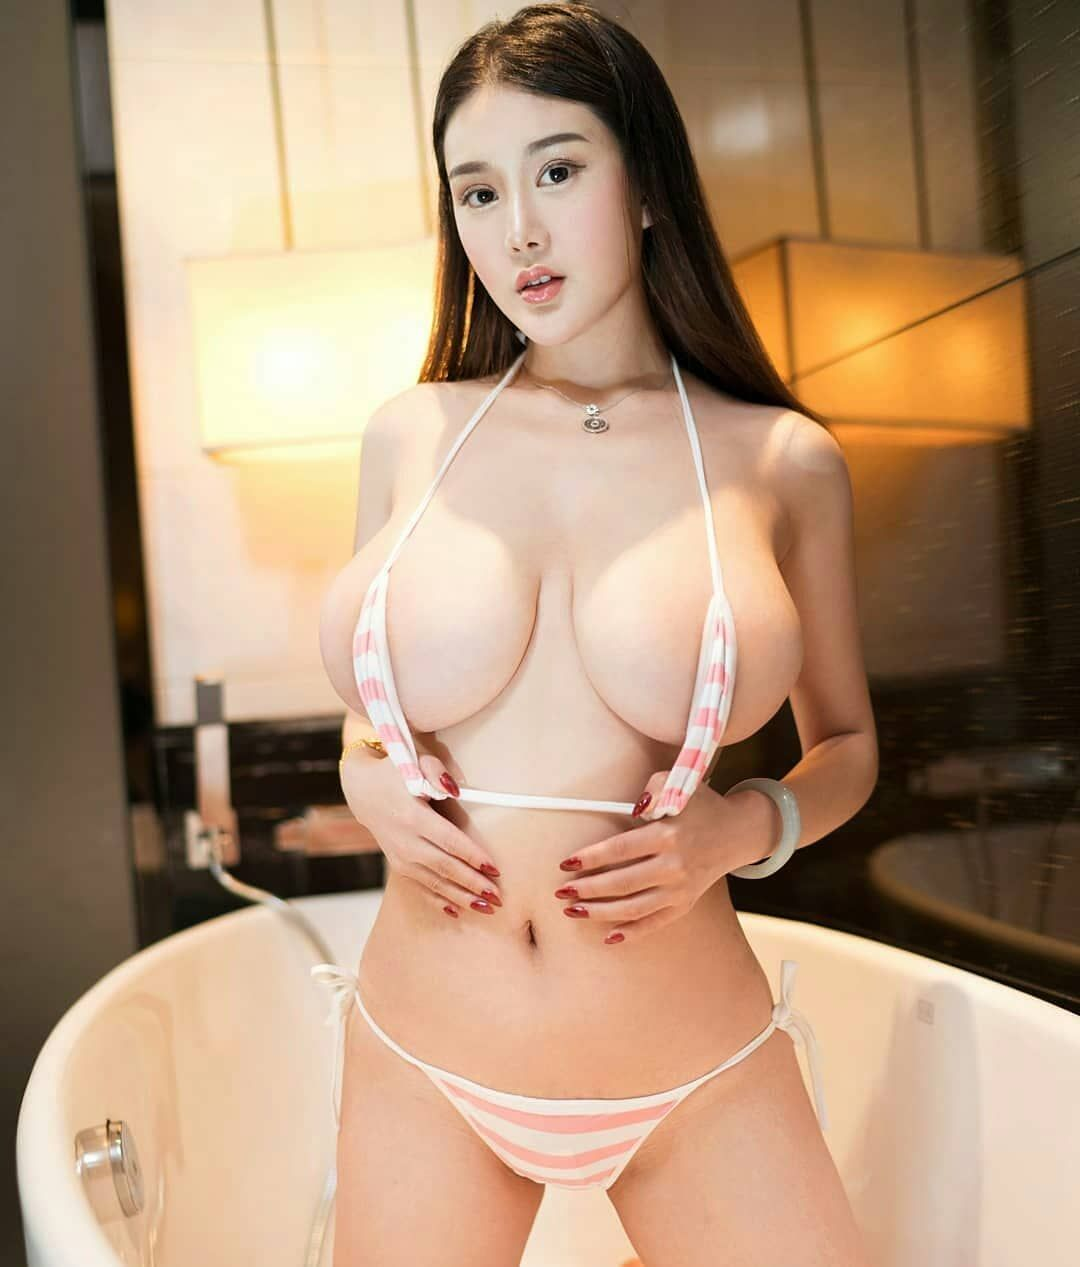 Girl nude asia The best